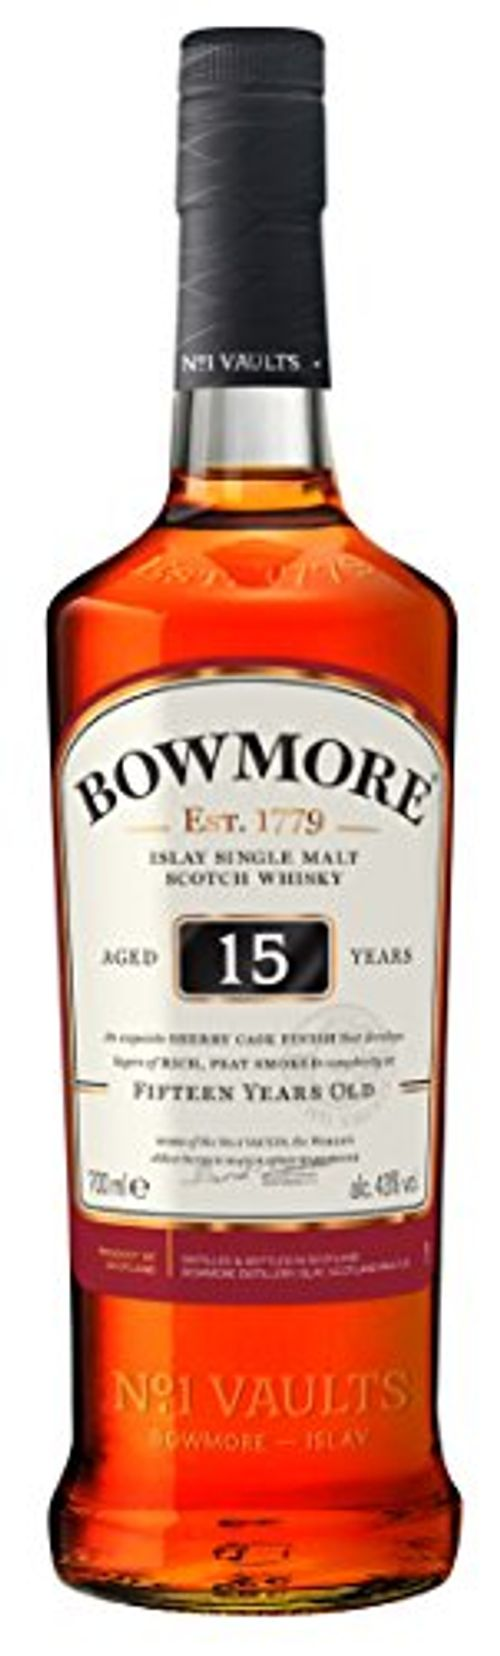 photo Wallpaper of Bowmore-Bowmore Islay Single Malt Scotch Whisky 15 Jahre (1 X-